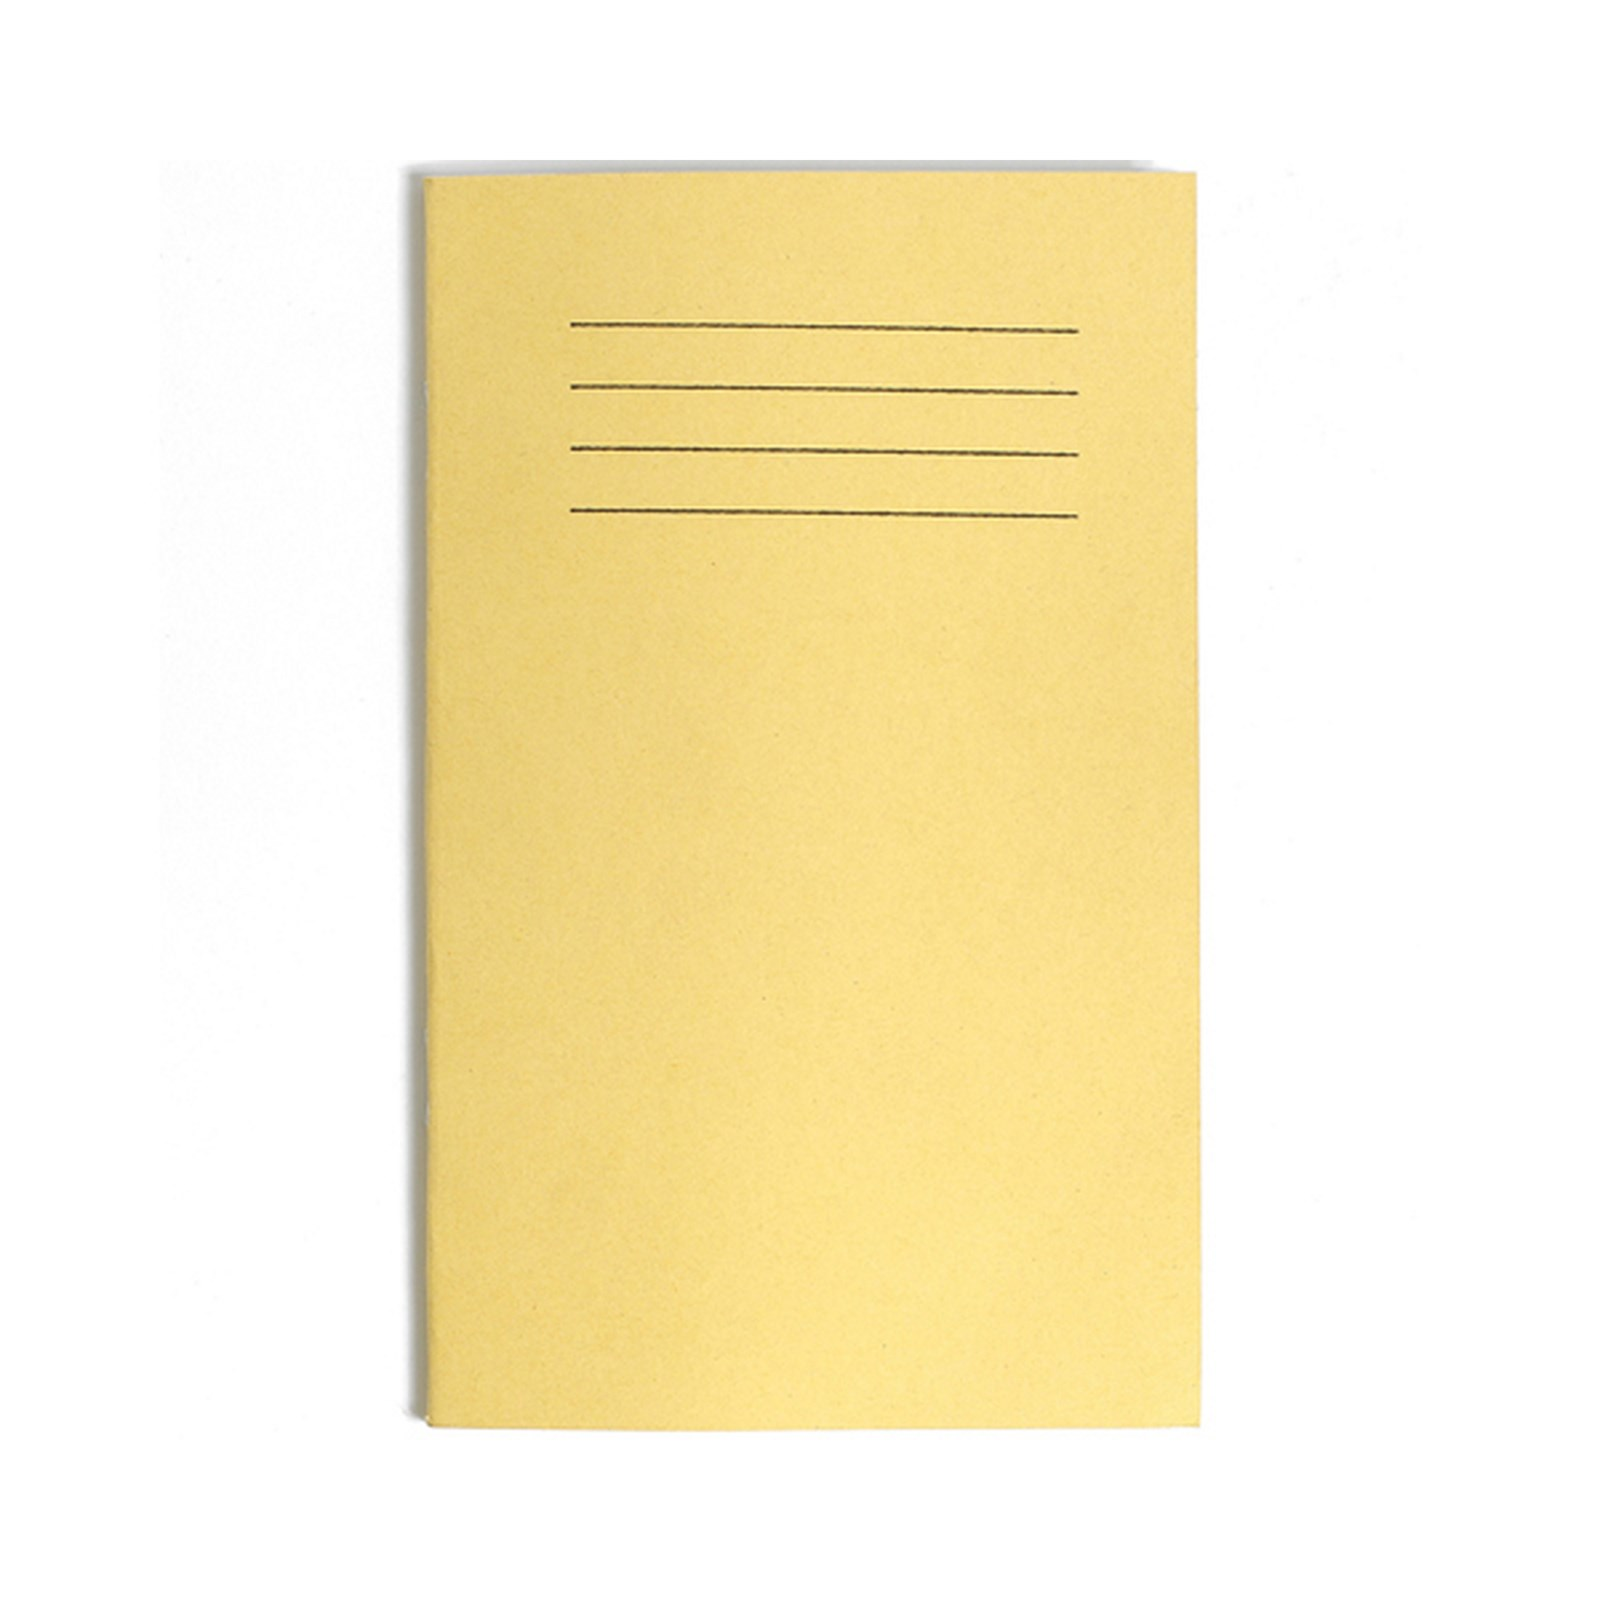 Vocabulary Book, 48 Pages, 7mm Ruled with Margin, Yellow Cover - Pack of 100